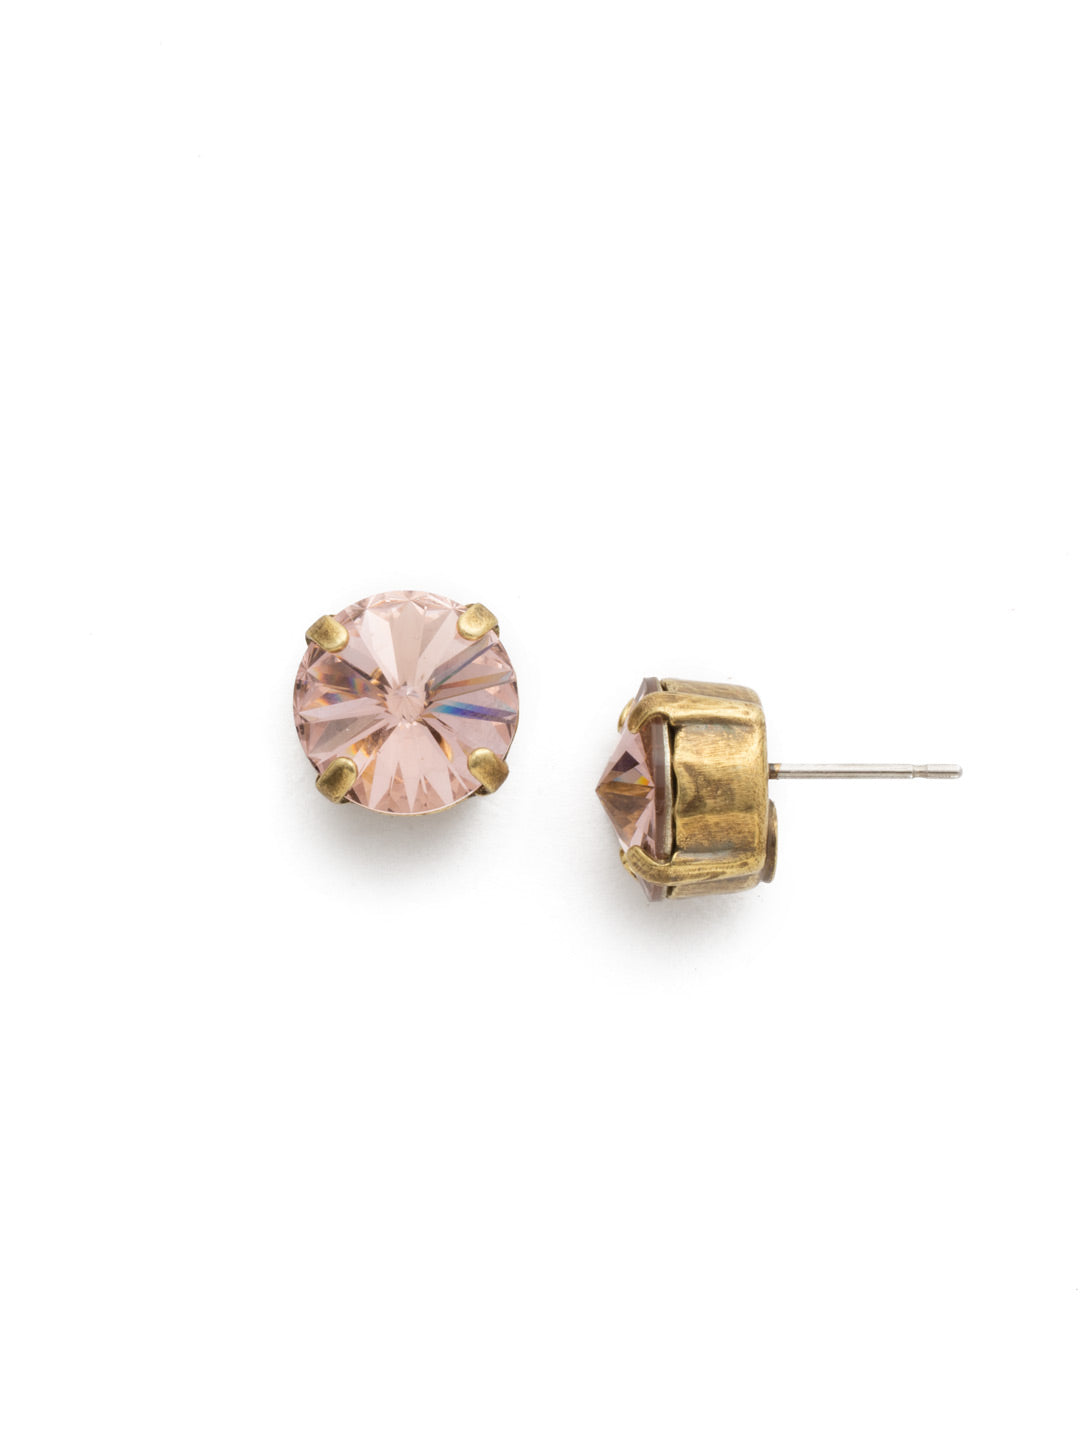 Round Crystal Stud Earrings - ECM14AGVIN